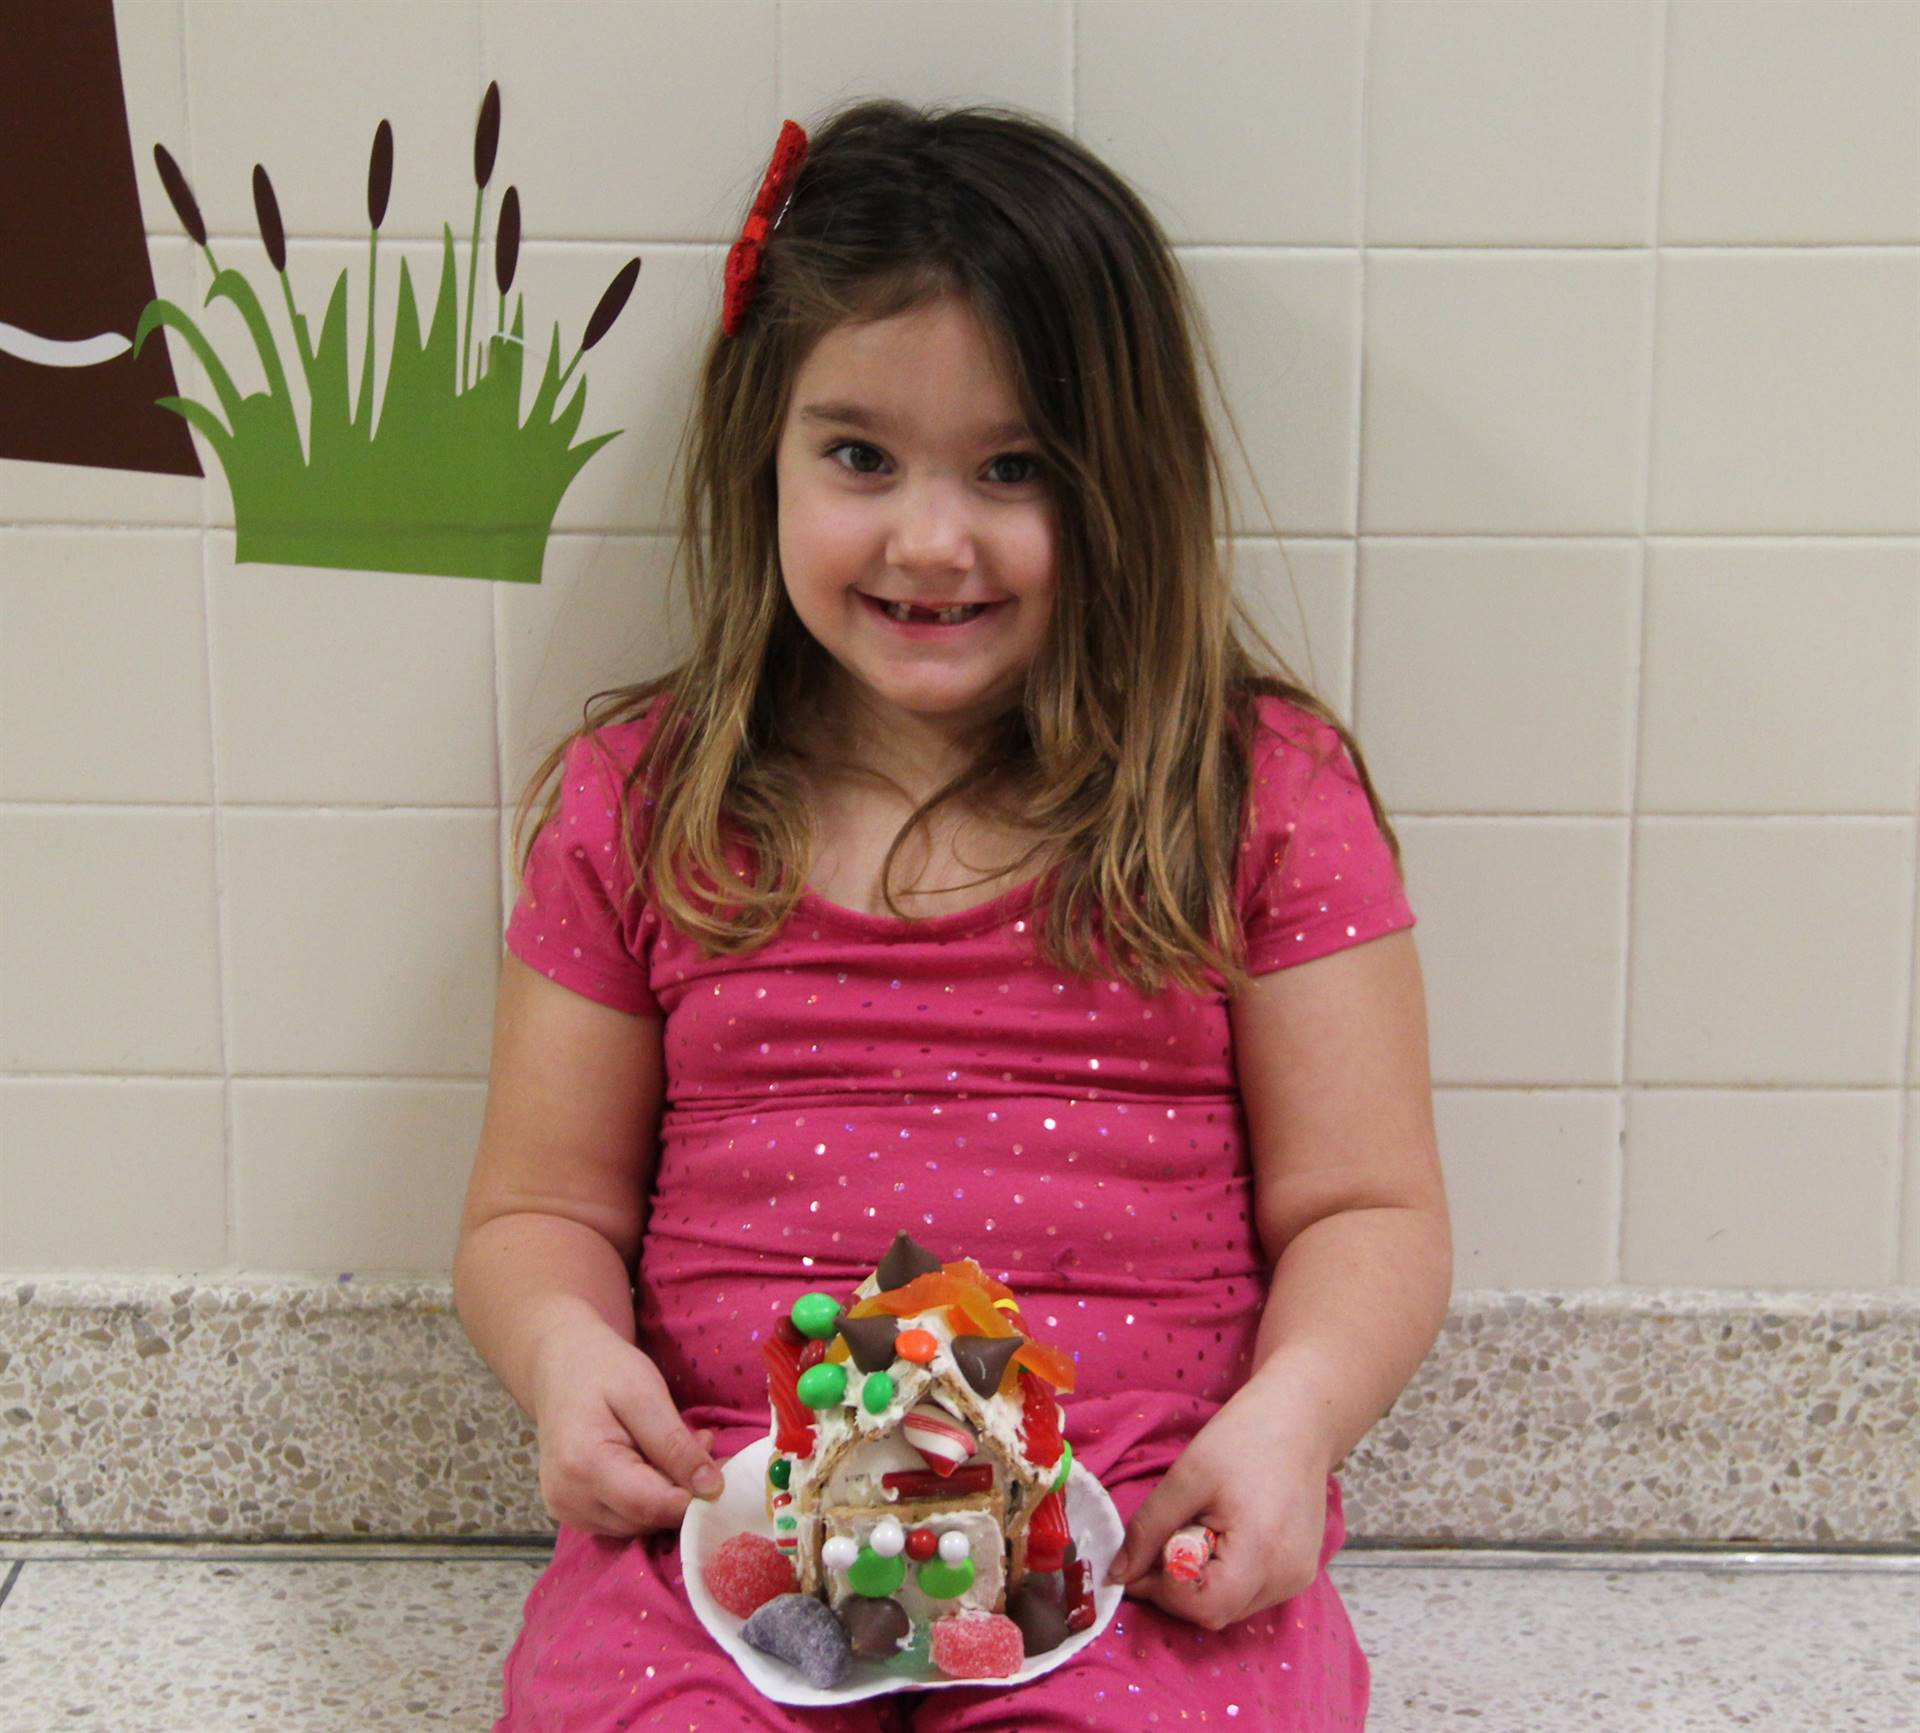 girl holding decorated gingerbread house